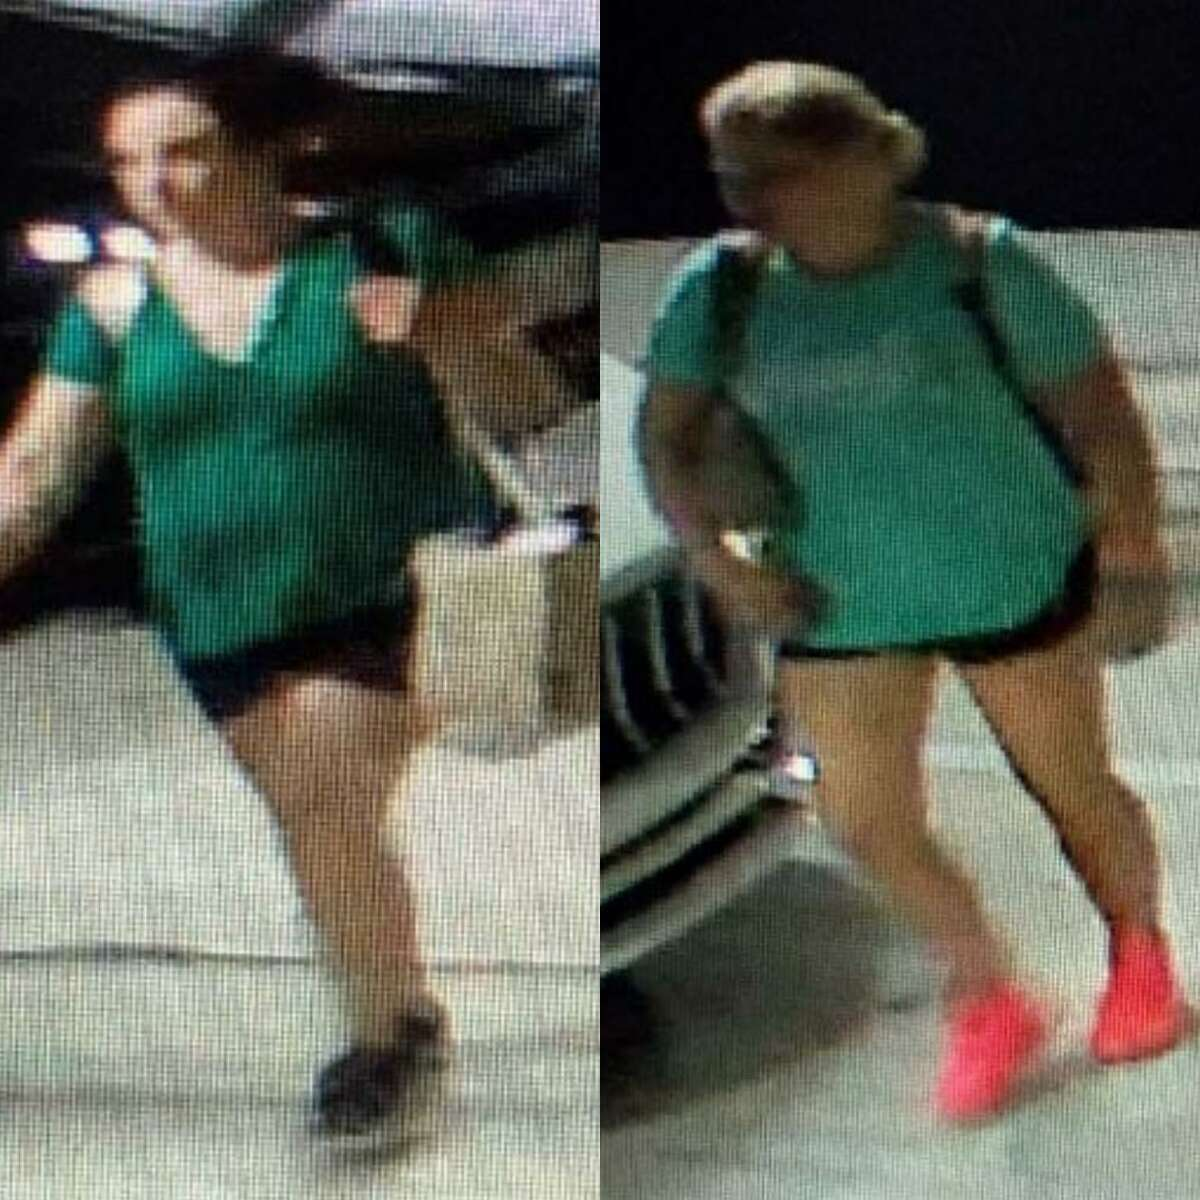 Surveillance captured images of two females authorities are saying are responsible for multiple vehicle burglaries at a parking garage in Spring.